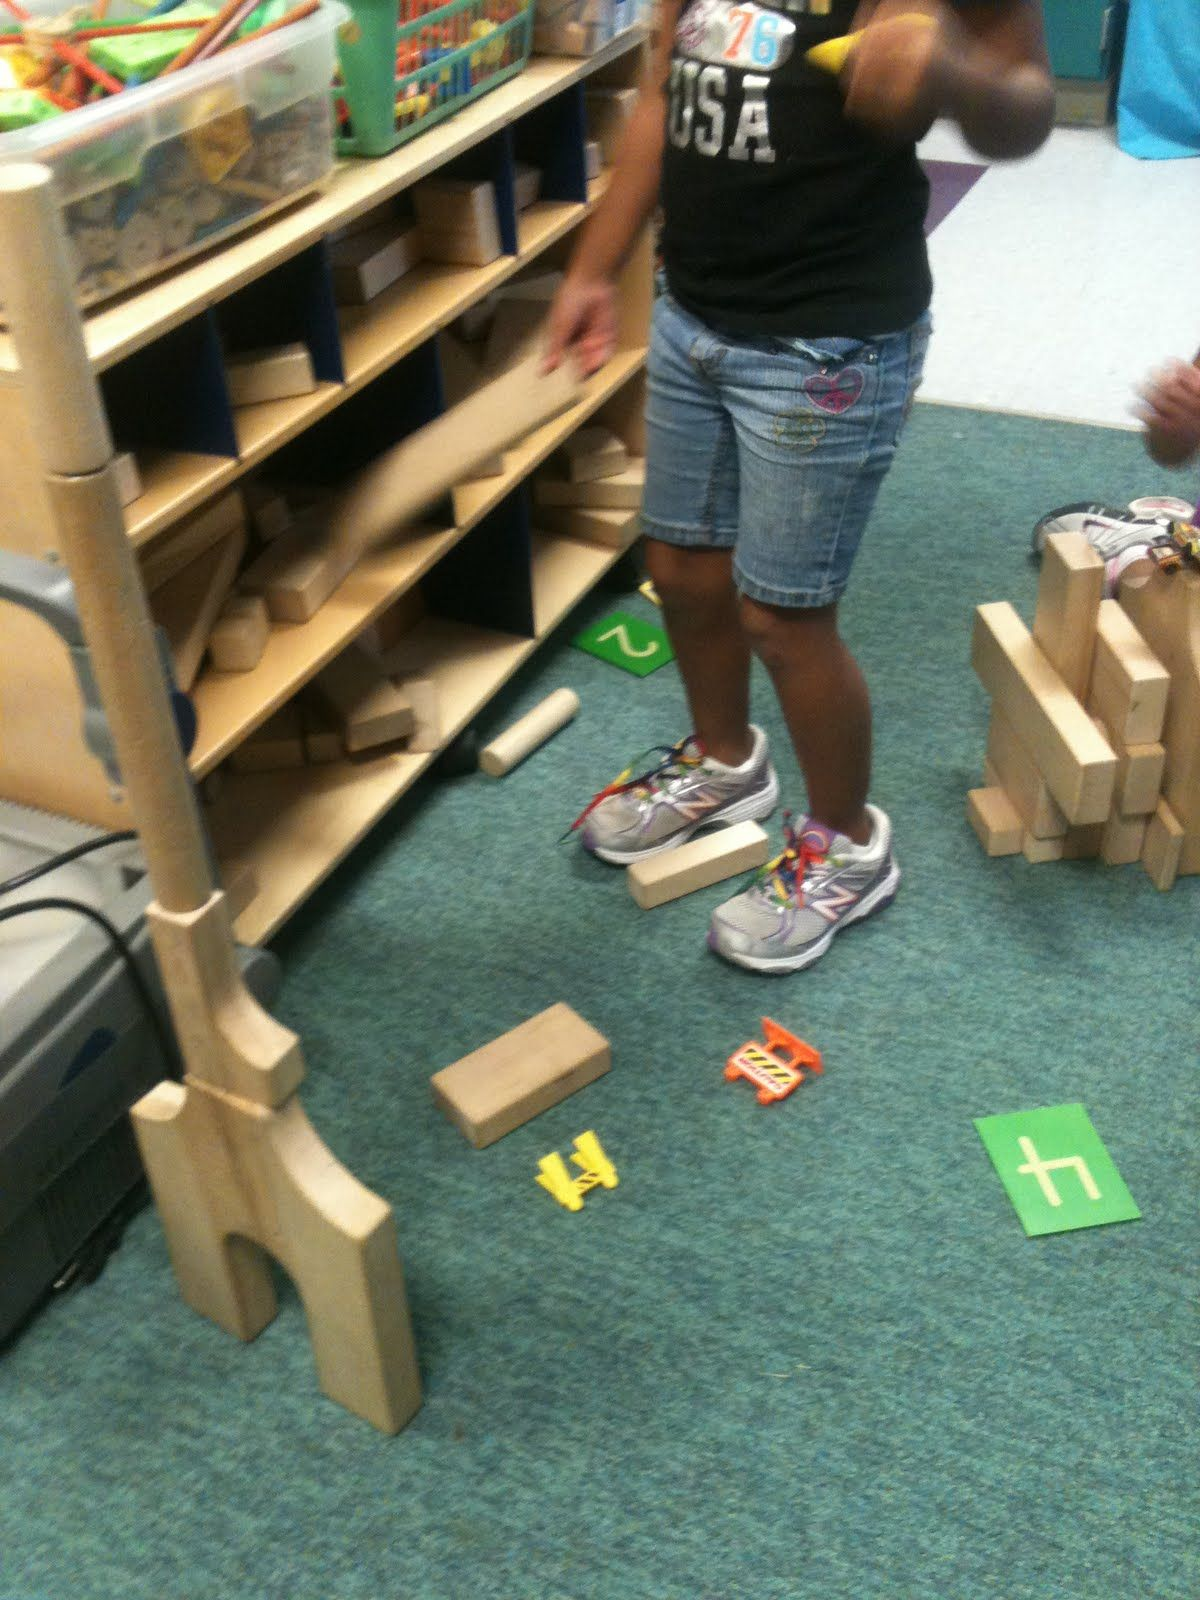 Kinder Garden: Building Block Towers To Match The Number On The Card